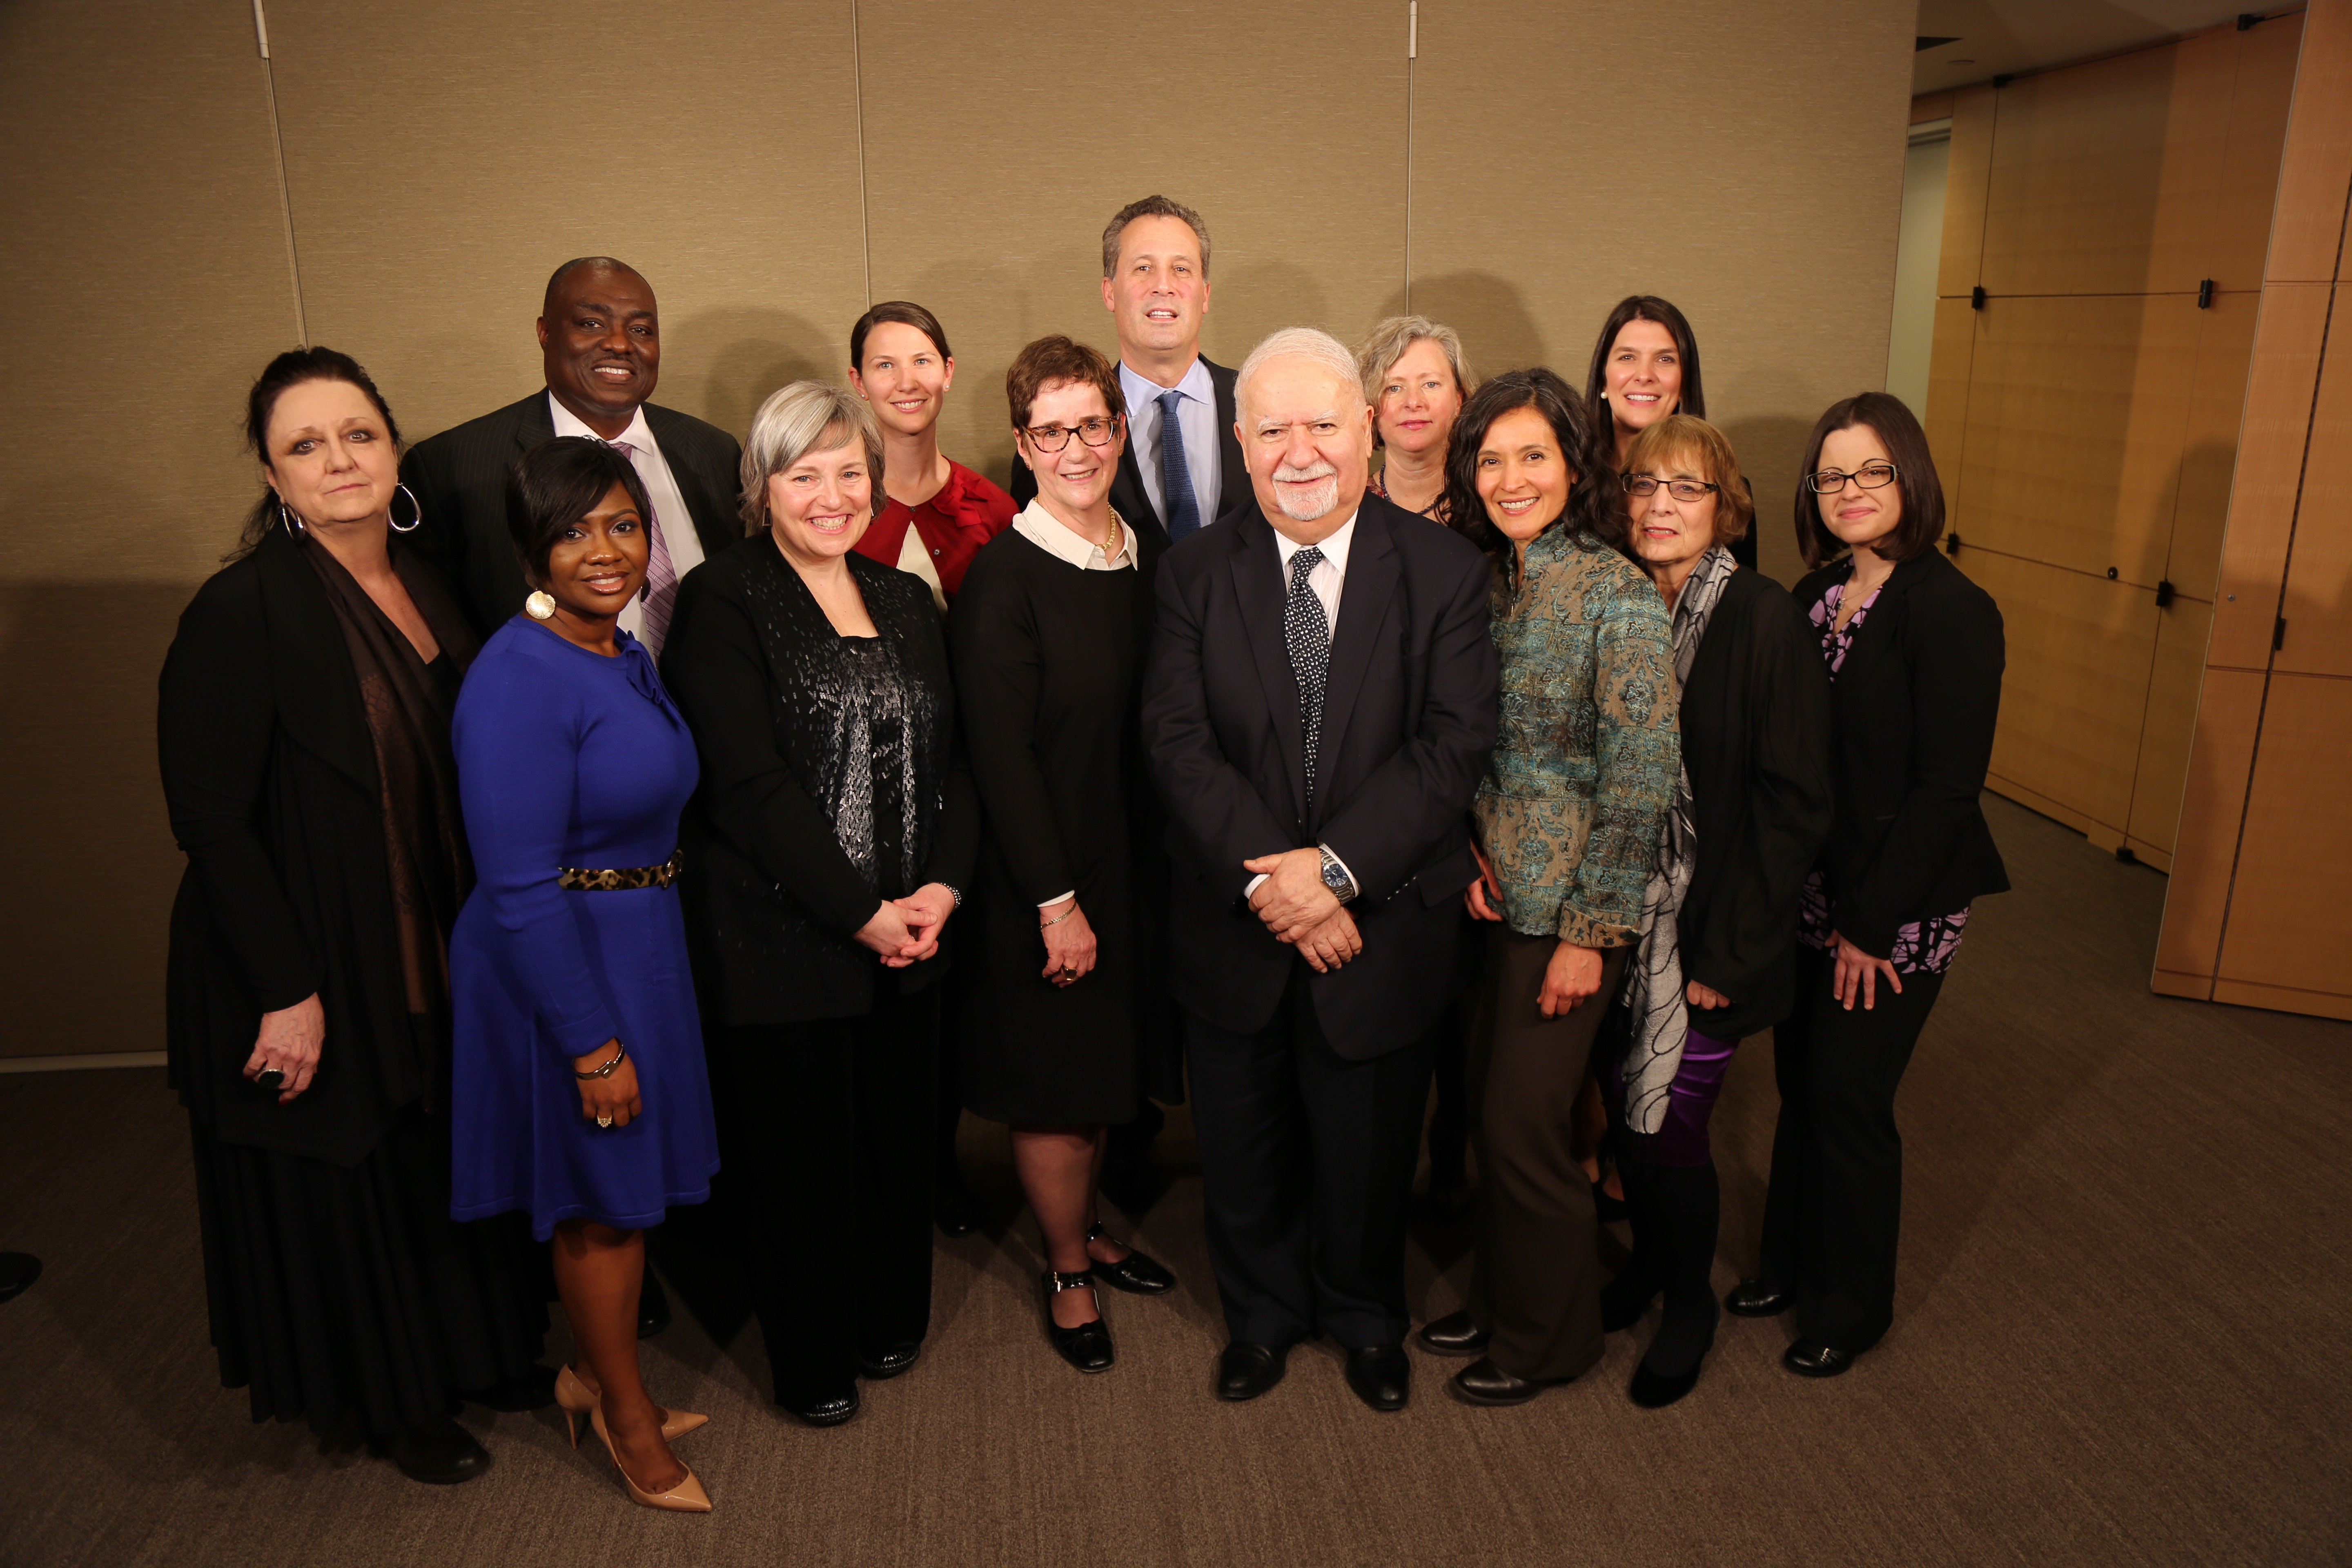 Winners of the 2016 I Love My Librarian award pose with Carnegie Corporation president Vartan Gregorian (front row, fifth from left) and New York Public Library president Anthony W. Marx (back row, third from left). (Photo: Celeste Ford)